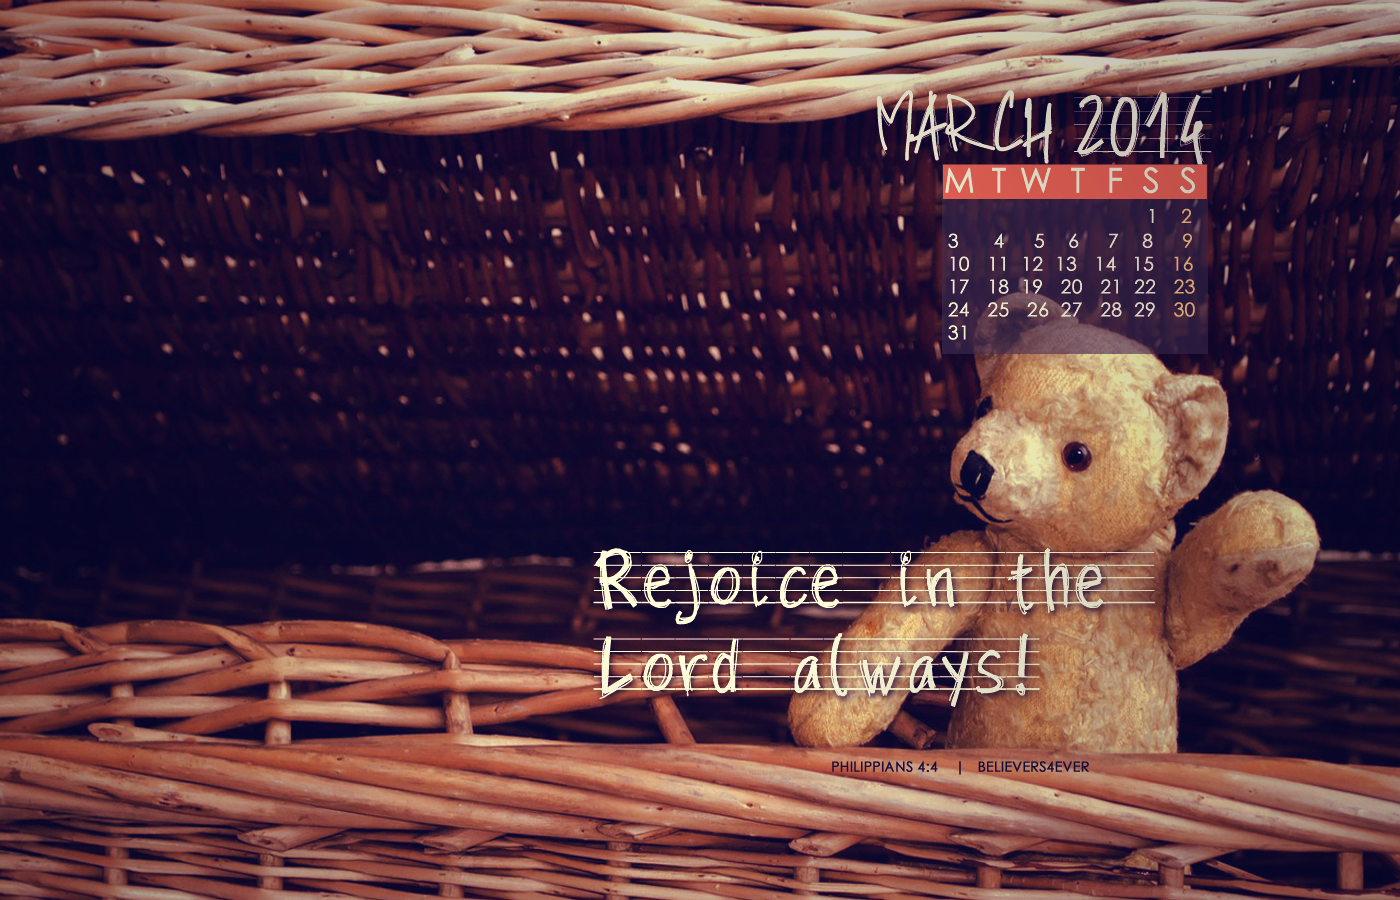 Rejoice in the Lord March wallpaper, Desktop Calender wallpaper, Christian wallpapers, Free wallpapers, gospel wallpapers, wallpapers with scripture, bible verse wallpaper,Christian website,Christian Graphics, christian wallpapers, believers4ever, christian graphics, free Christian desktop wallpaper, bible wallpaper, scripture wallpaper, Free Christian wallpapers